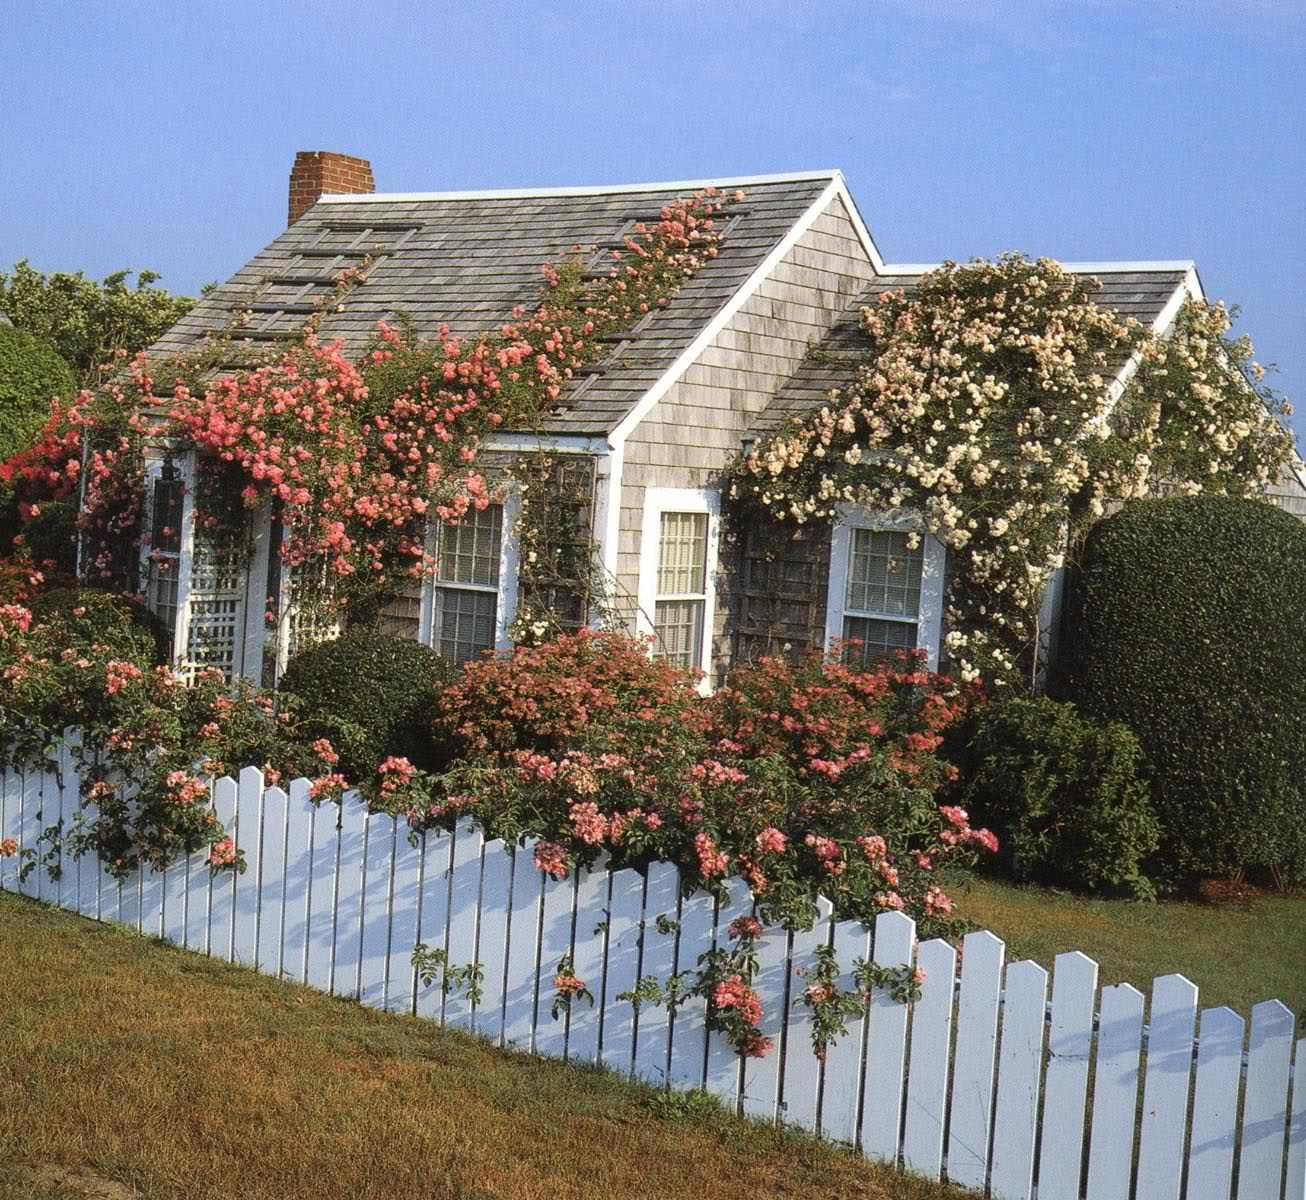 For A Nantucket/Cape Cod Cottage